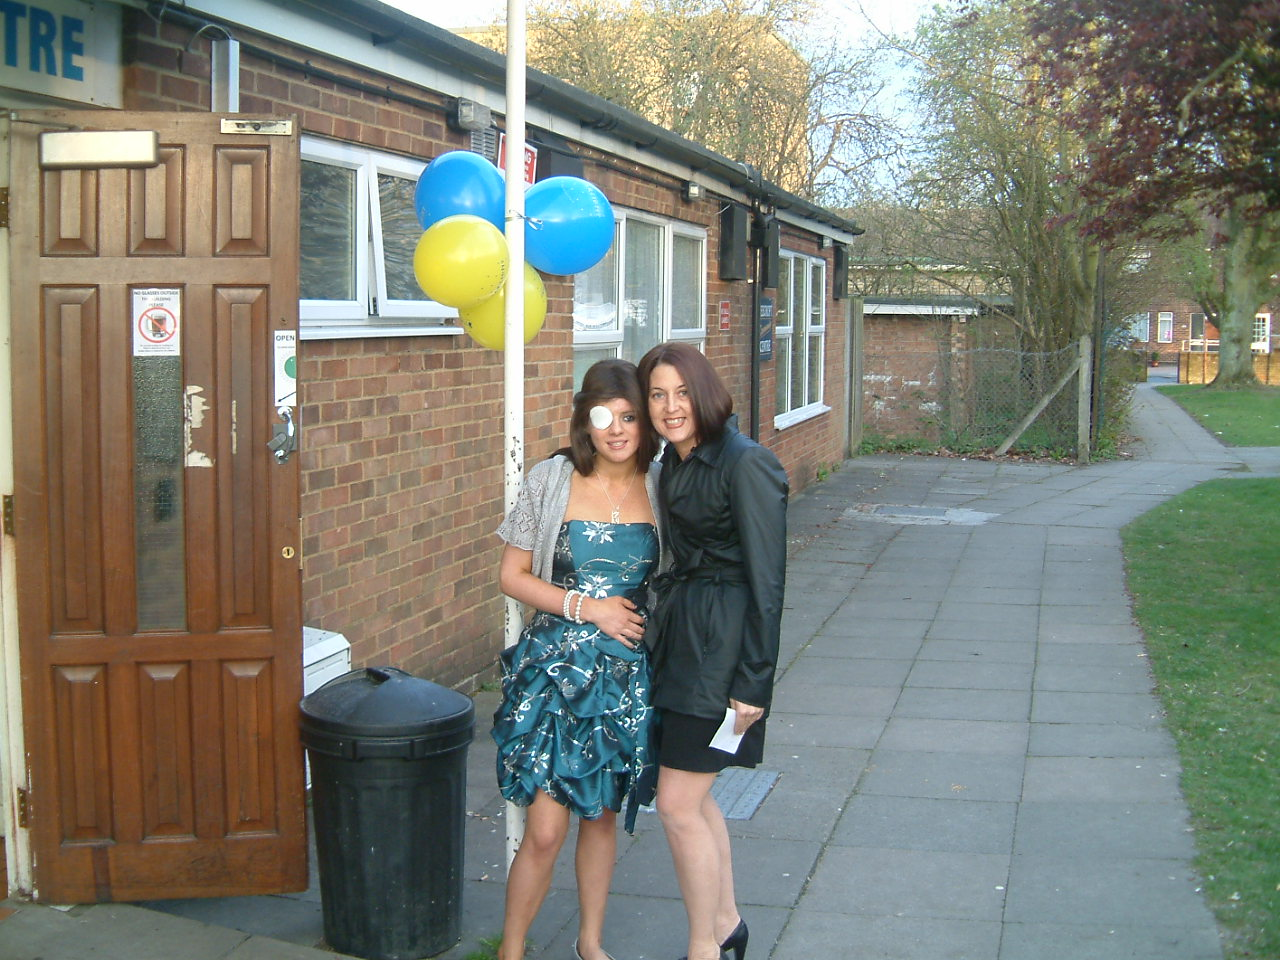 Becky and Nicole outside the venue for the Starlight Evening